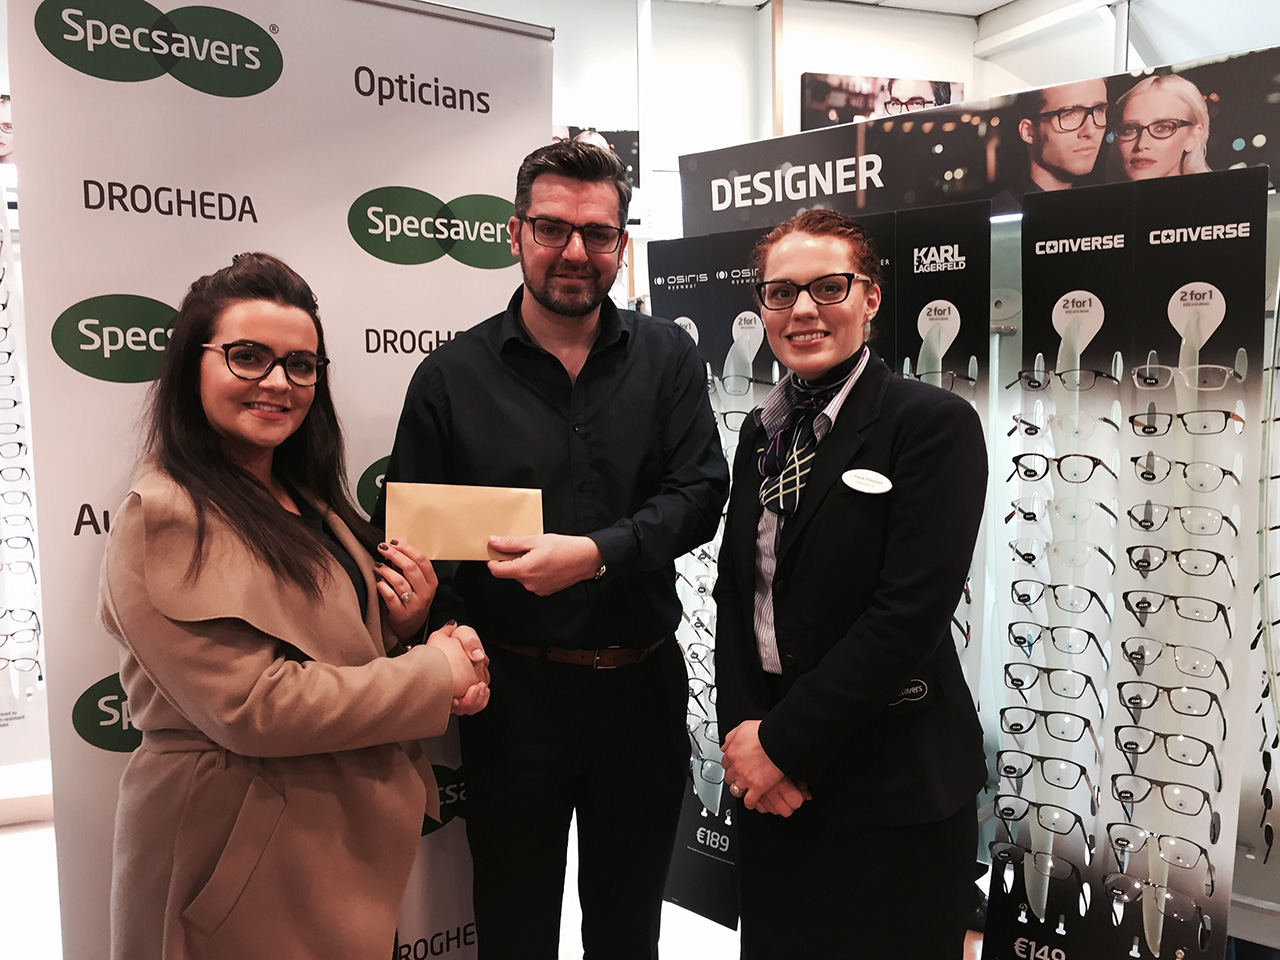 Swoty winner for Specsavers